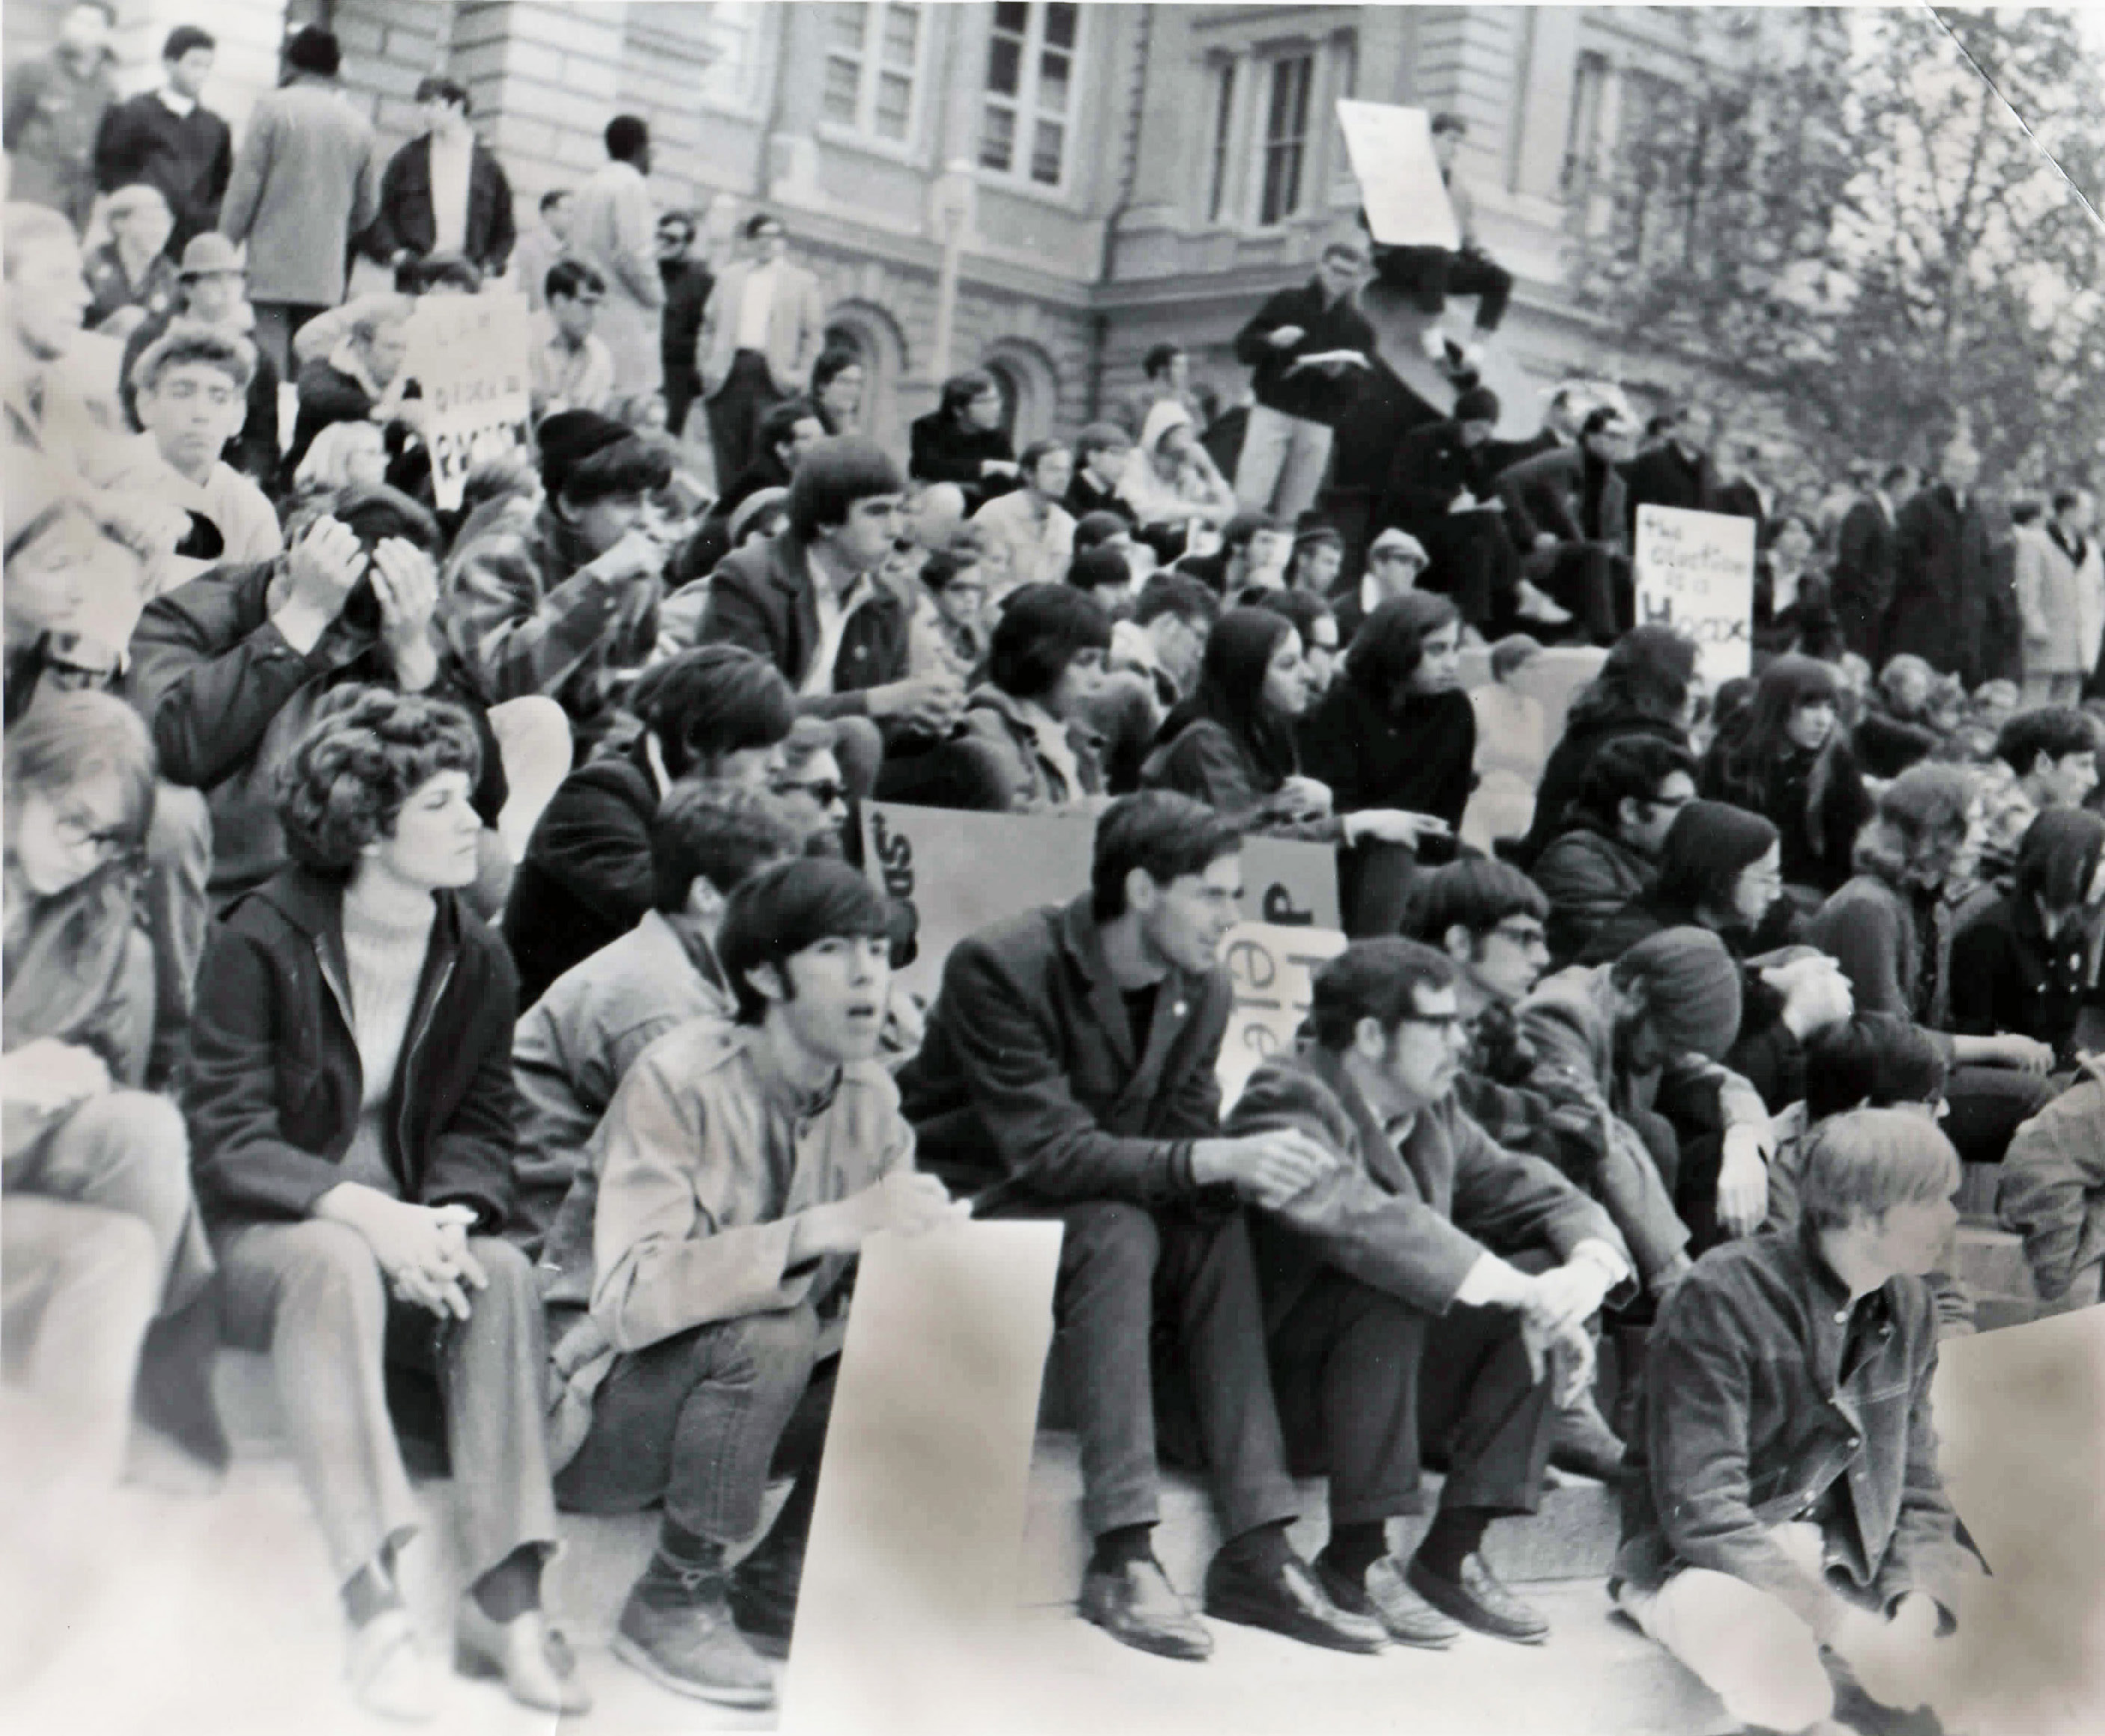 Protest against the Vietnam war in 1968, at Drake University